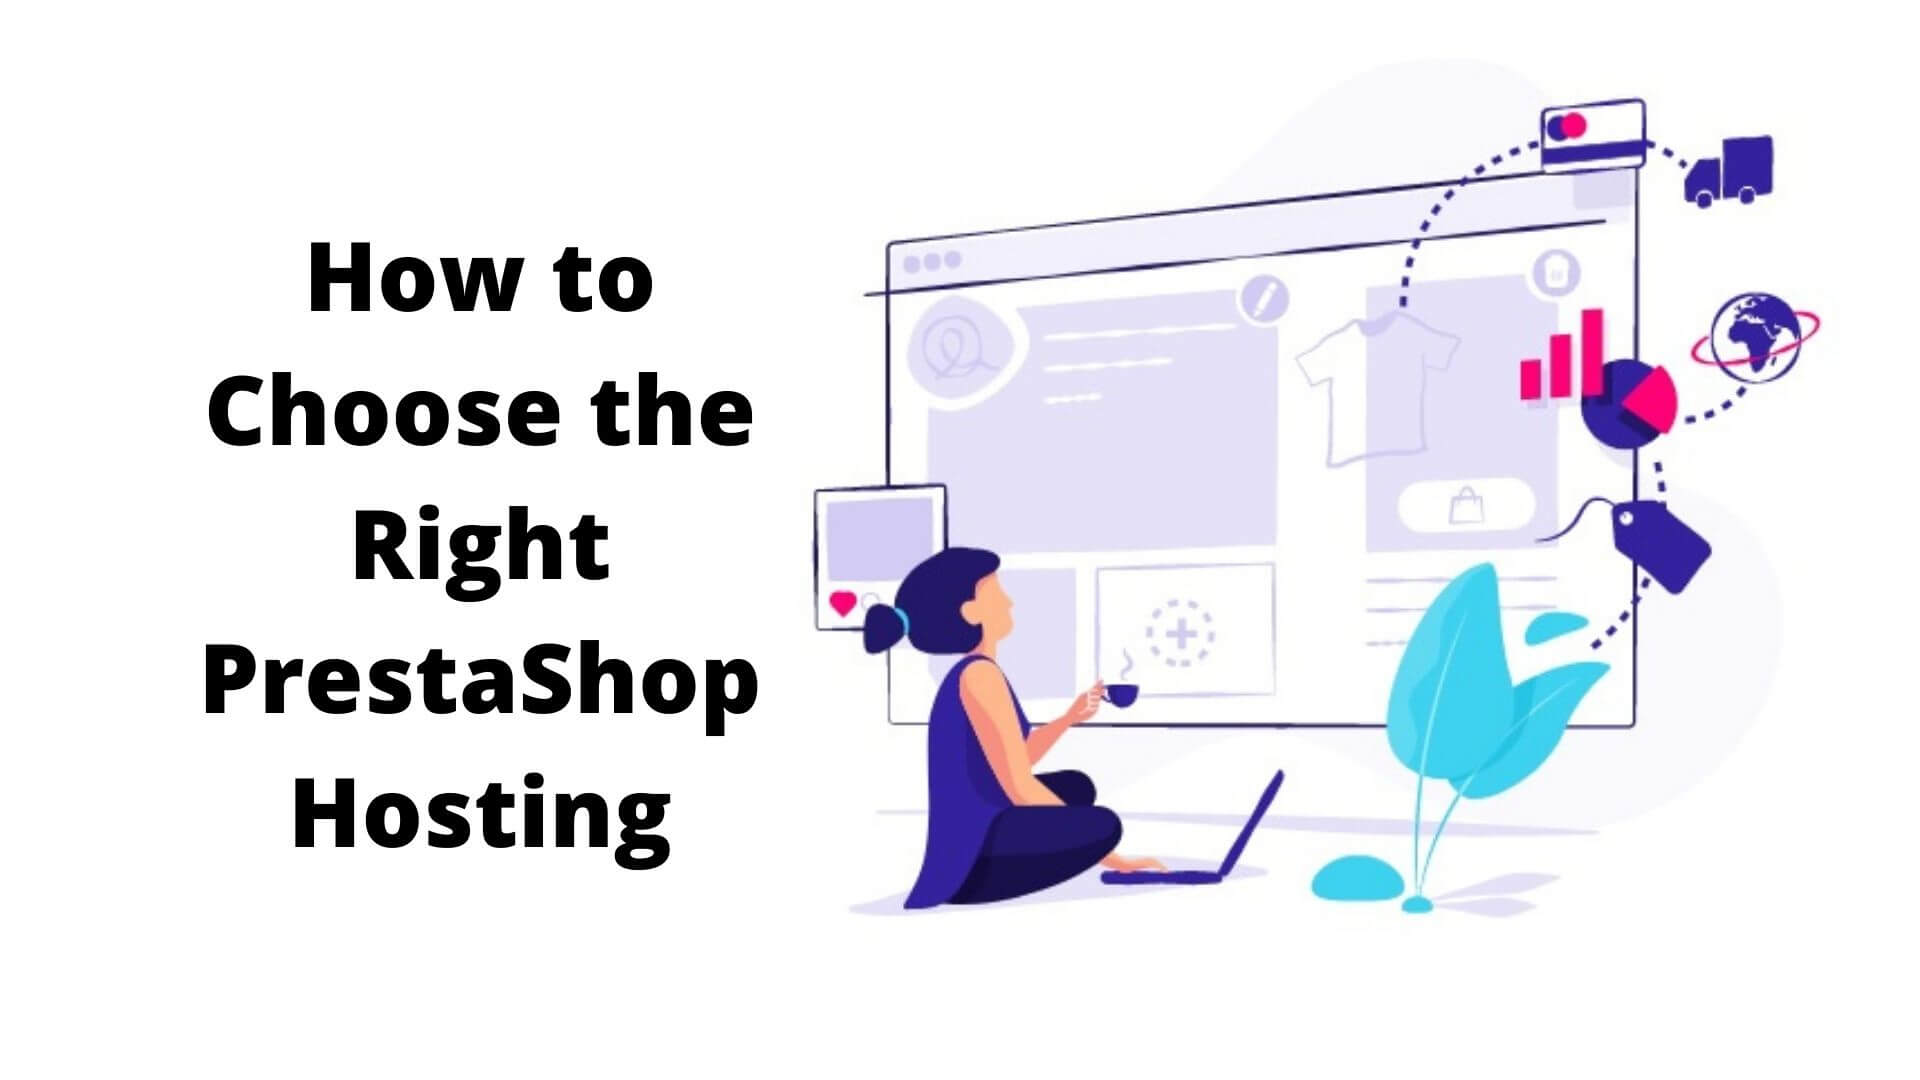 How-to-Choose-the-Right-PrestaShop-Hosting-1